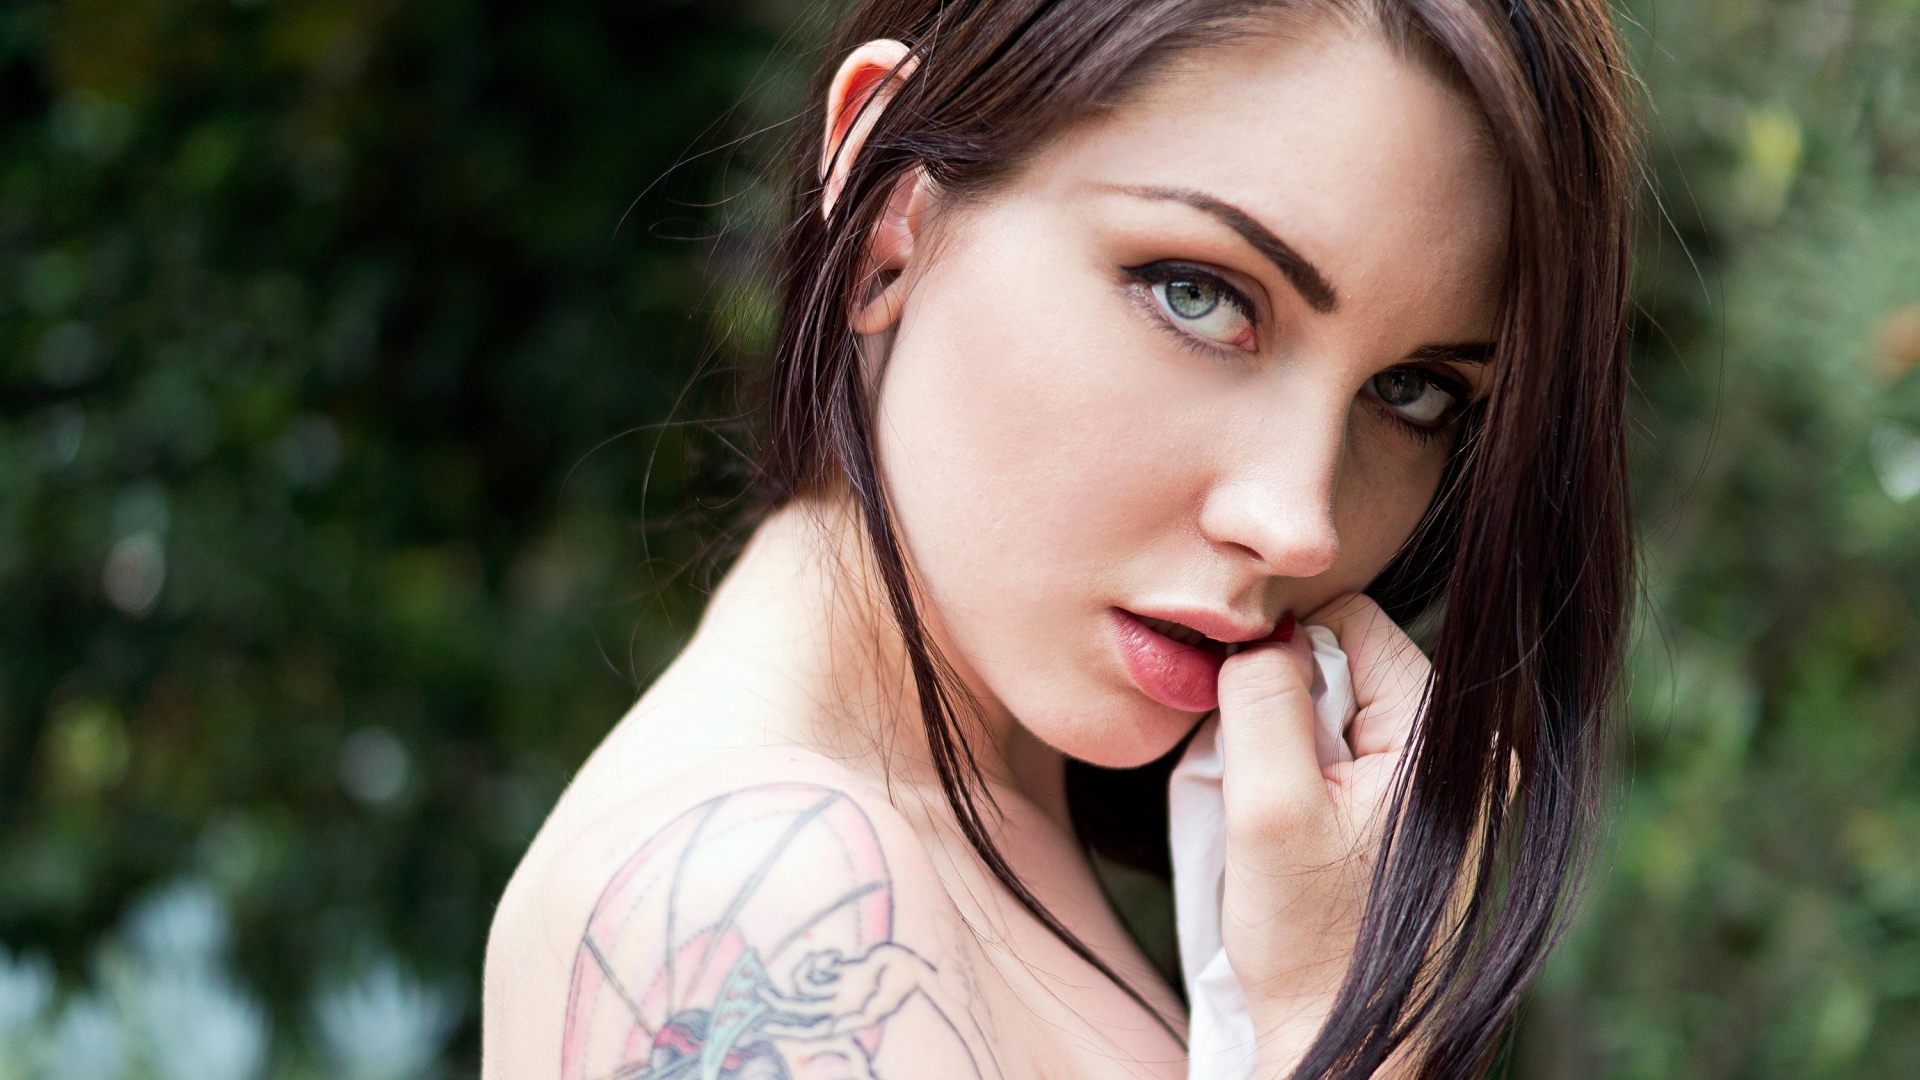 Tube download suicide girl video white